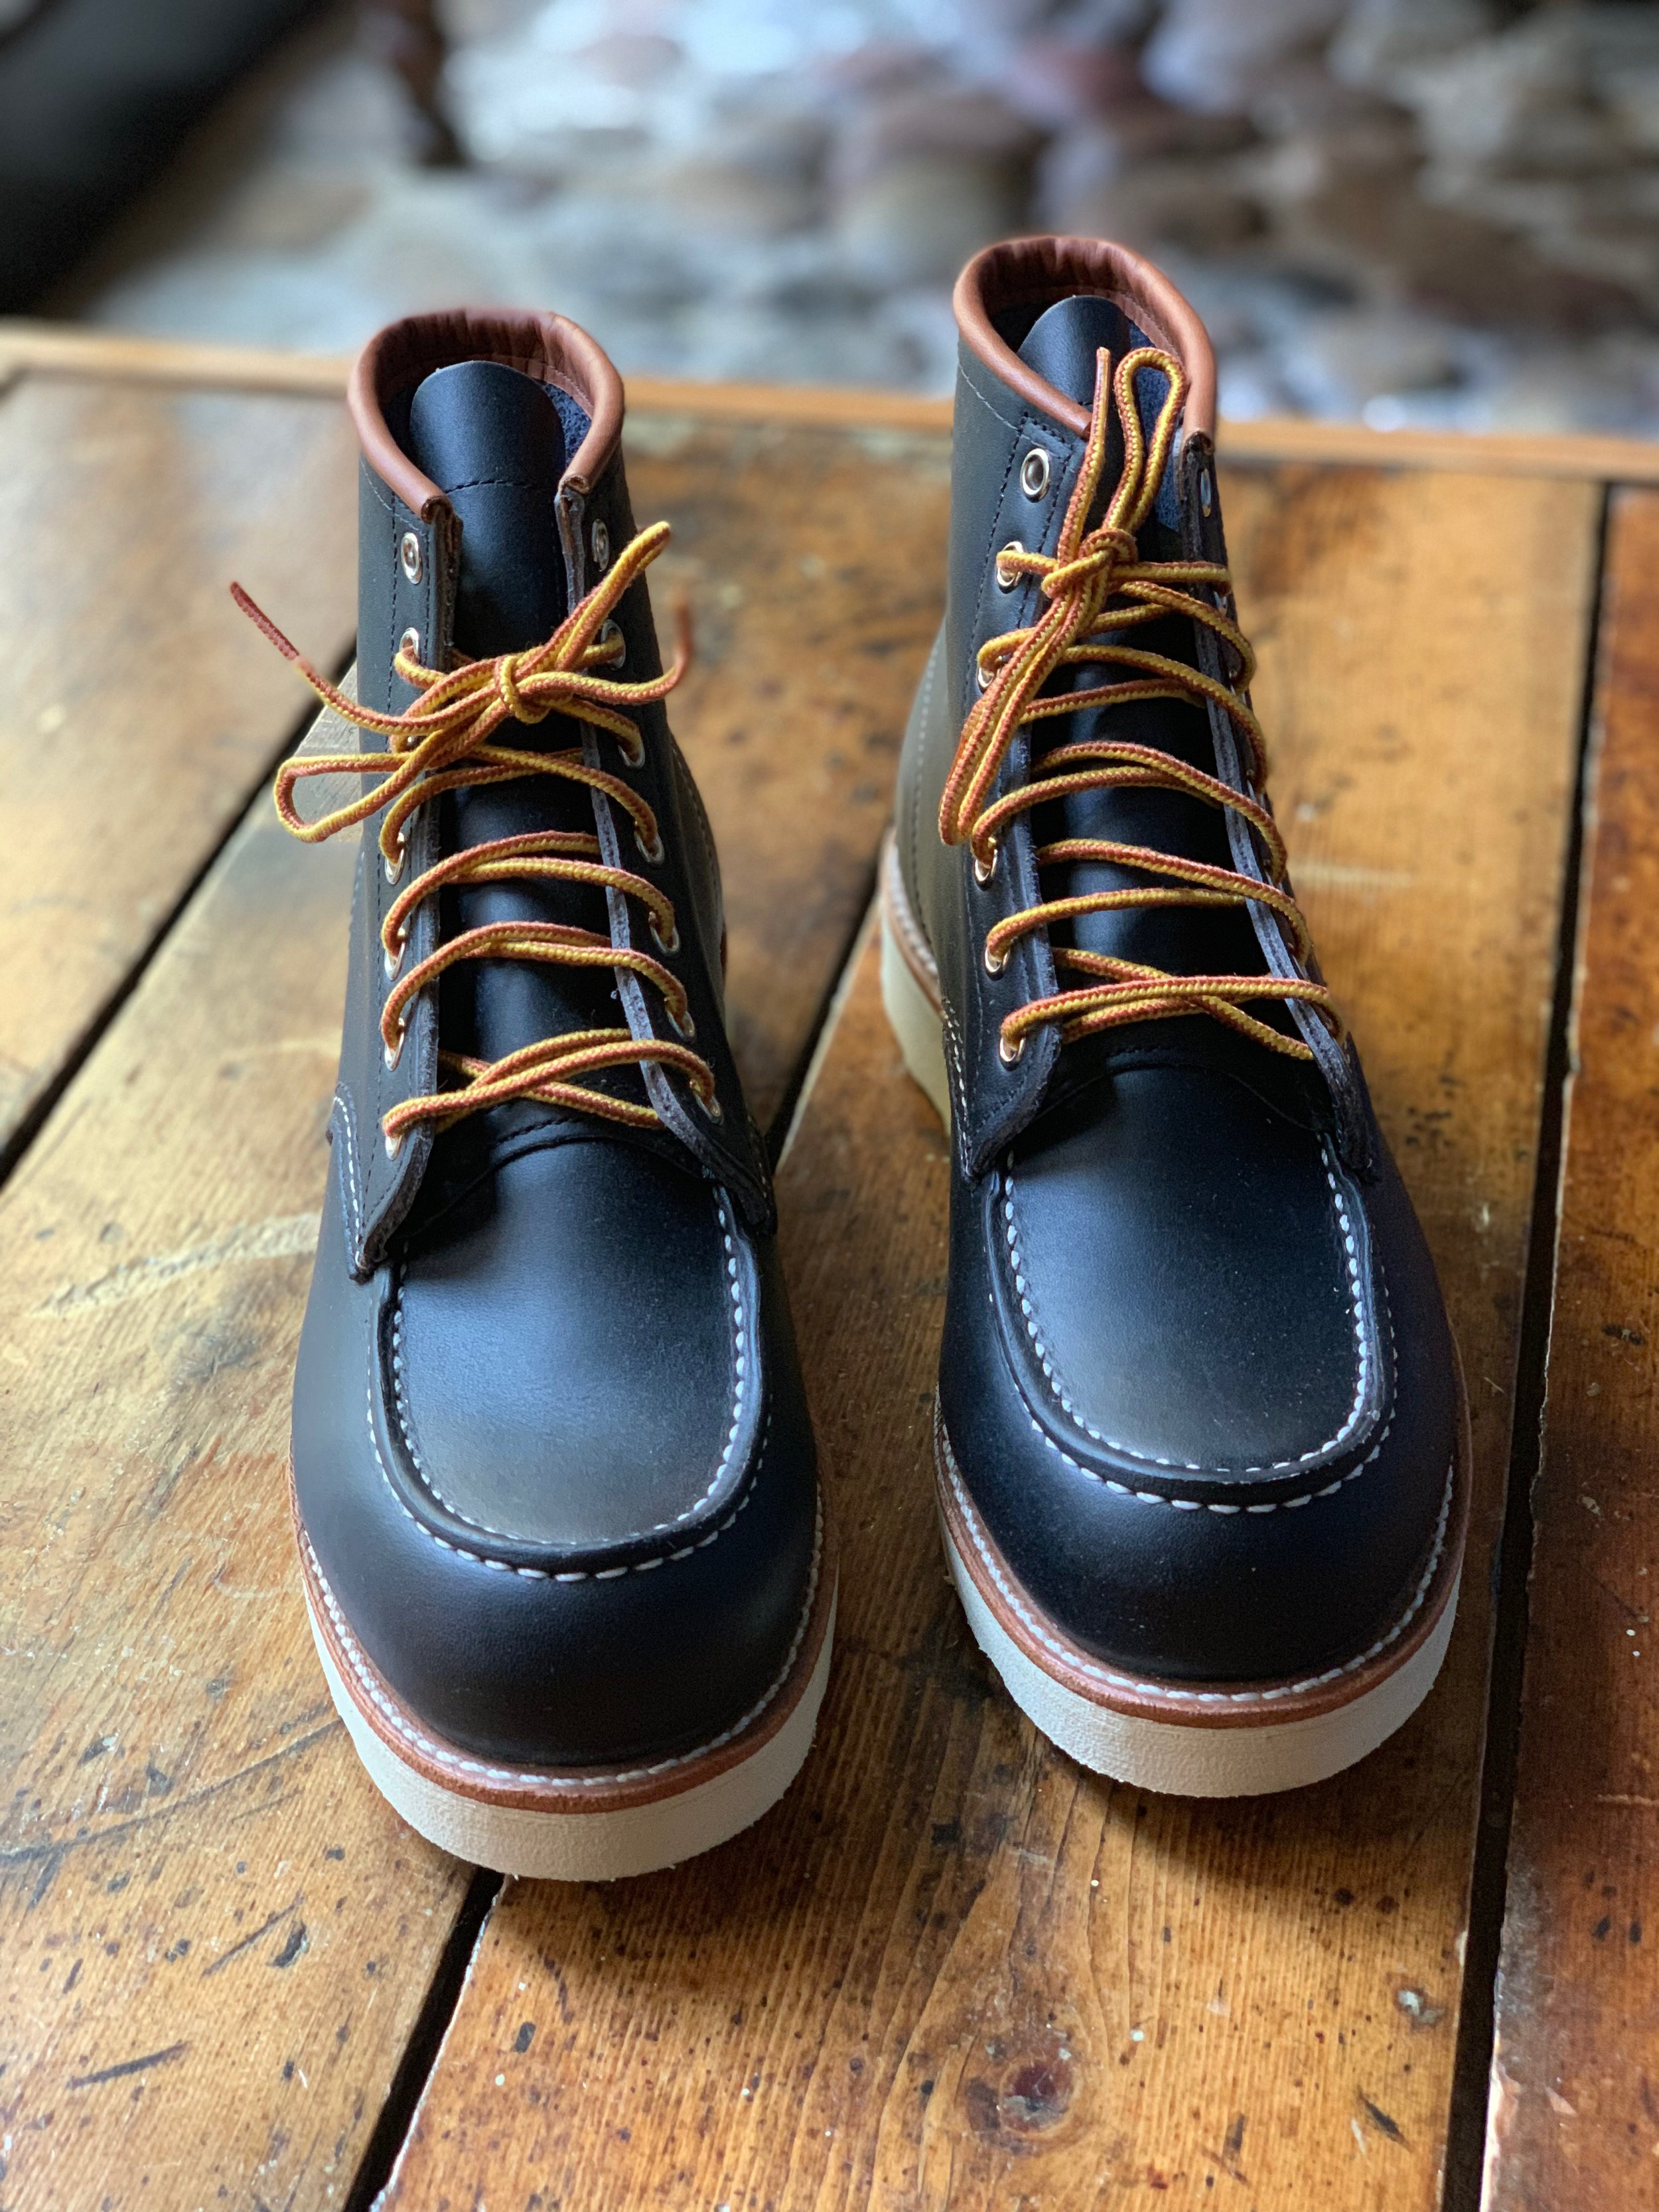 Red WIng Moc Toe - 8859 - Navy Portage